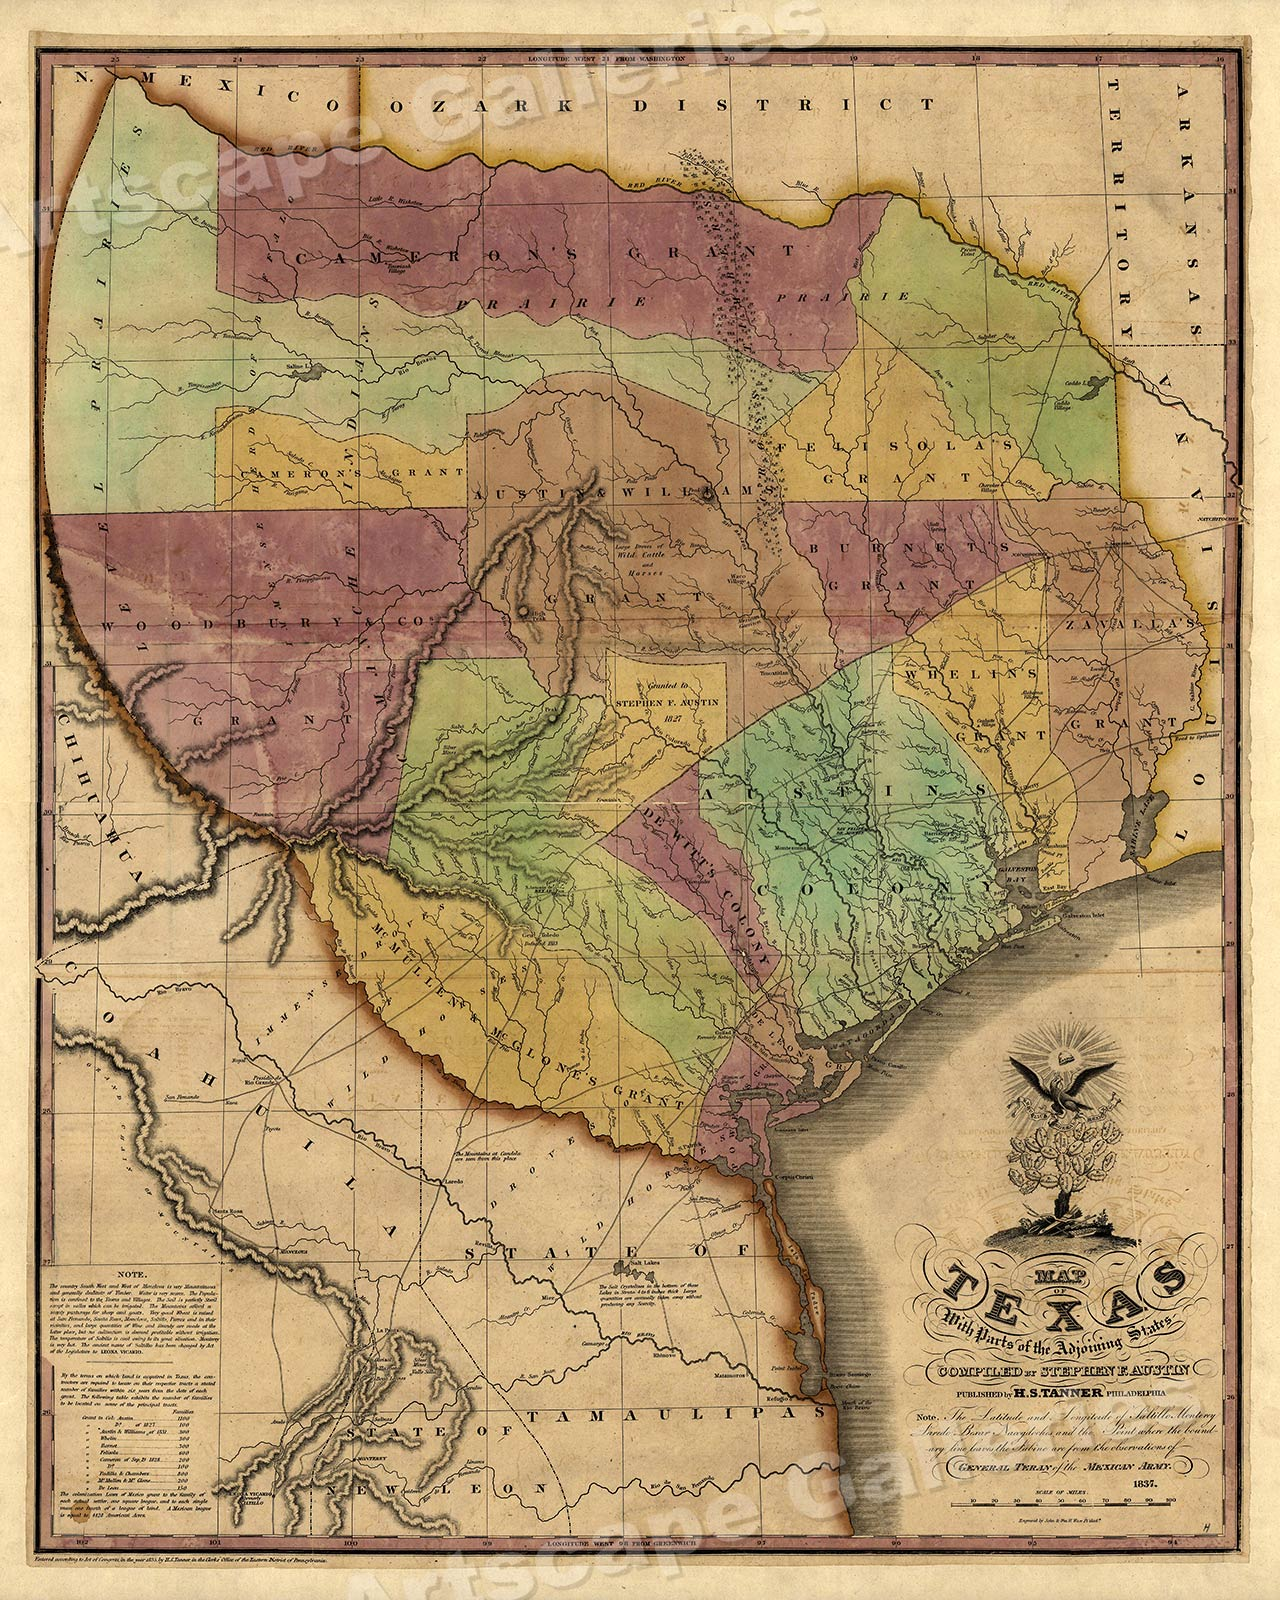 24x30 1830s Historic Map of The Republic of Texas by Stephen F Austin